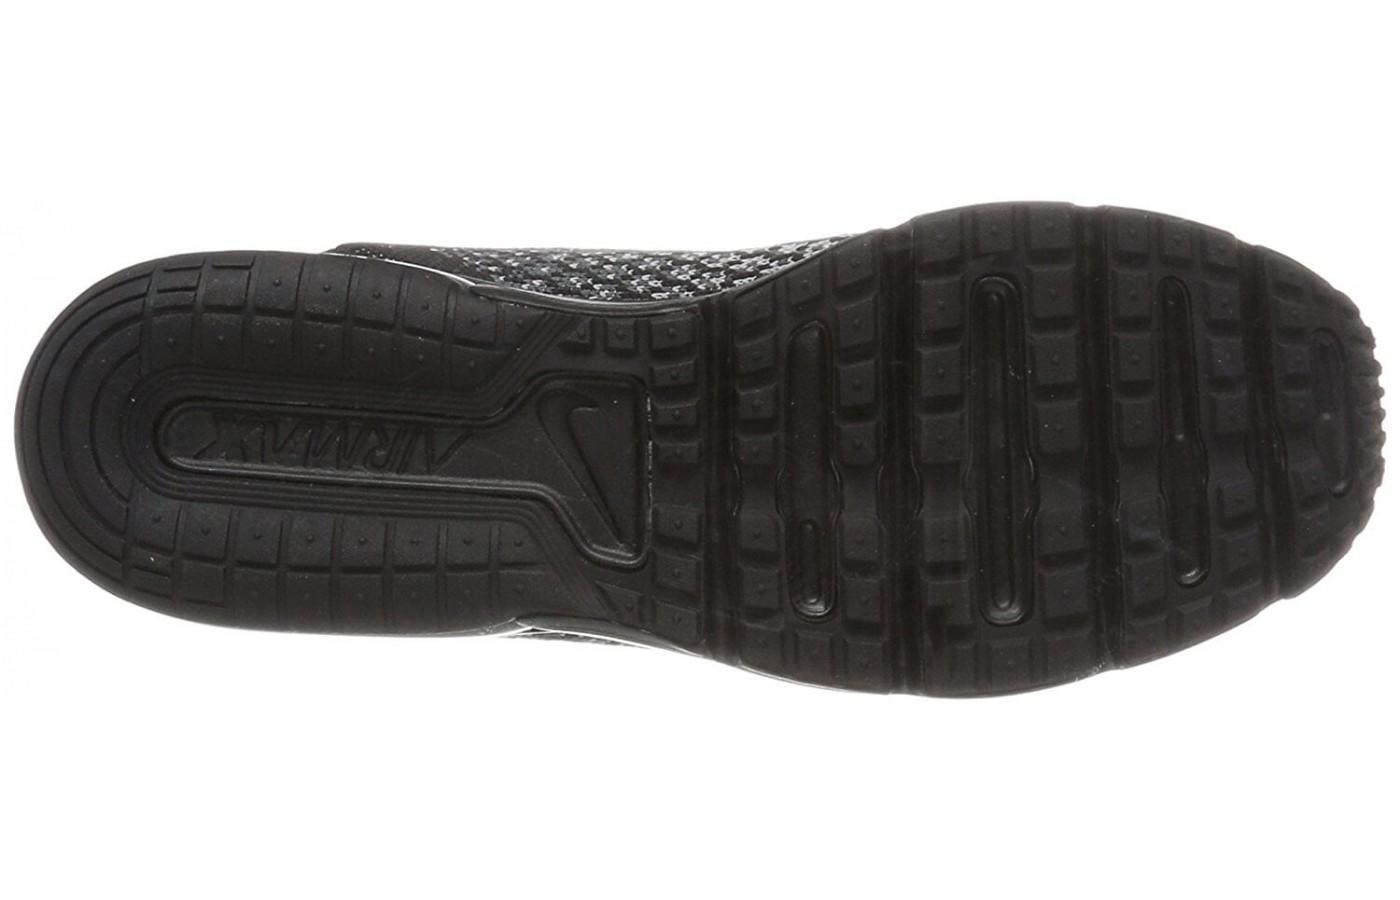 The outsole makes this a great shoe for everyday wear or cross training